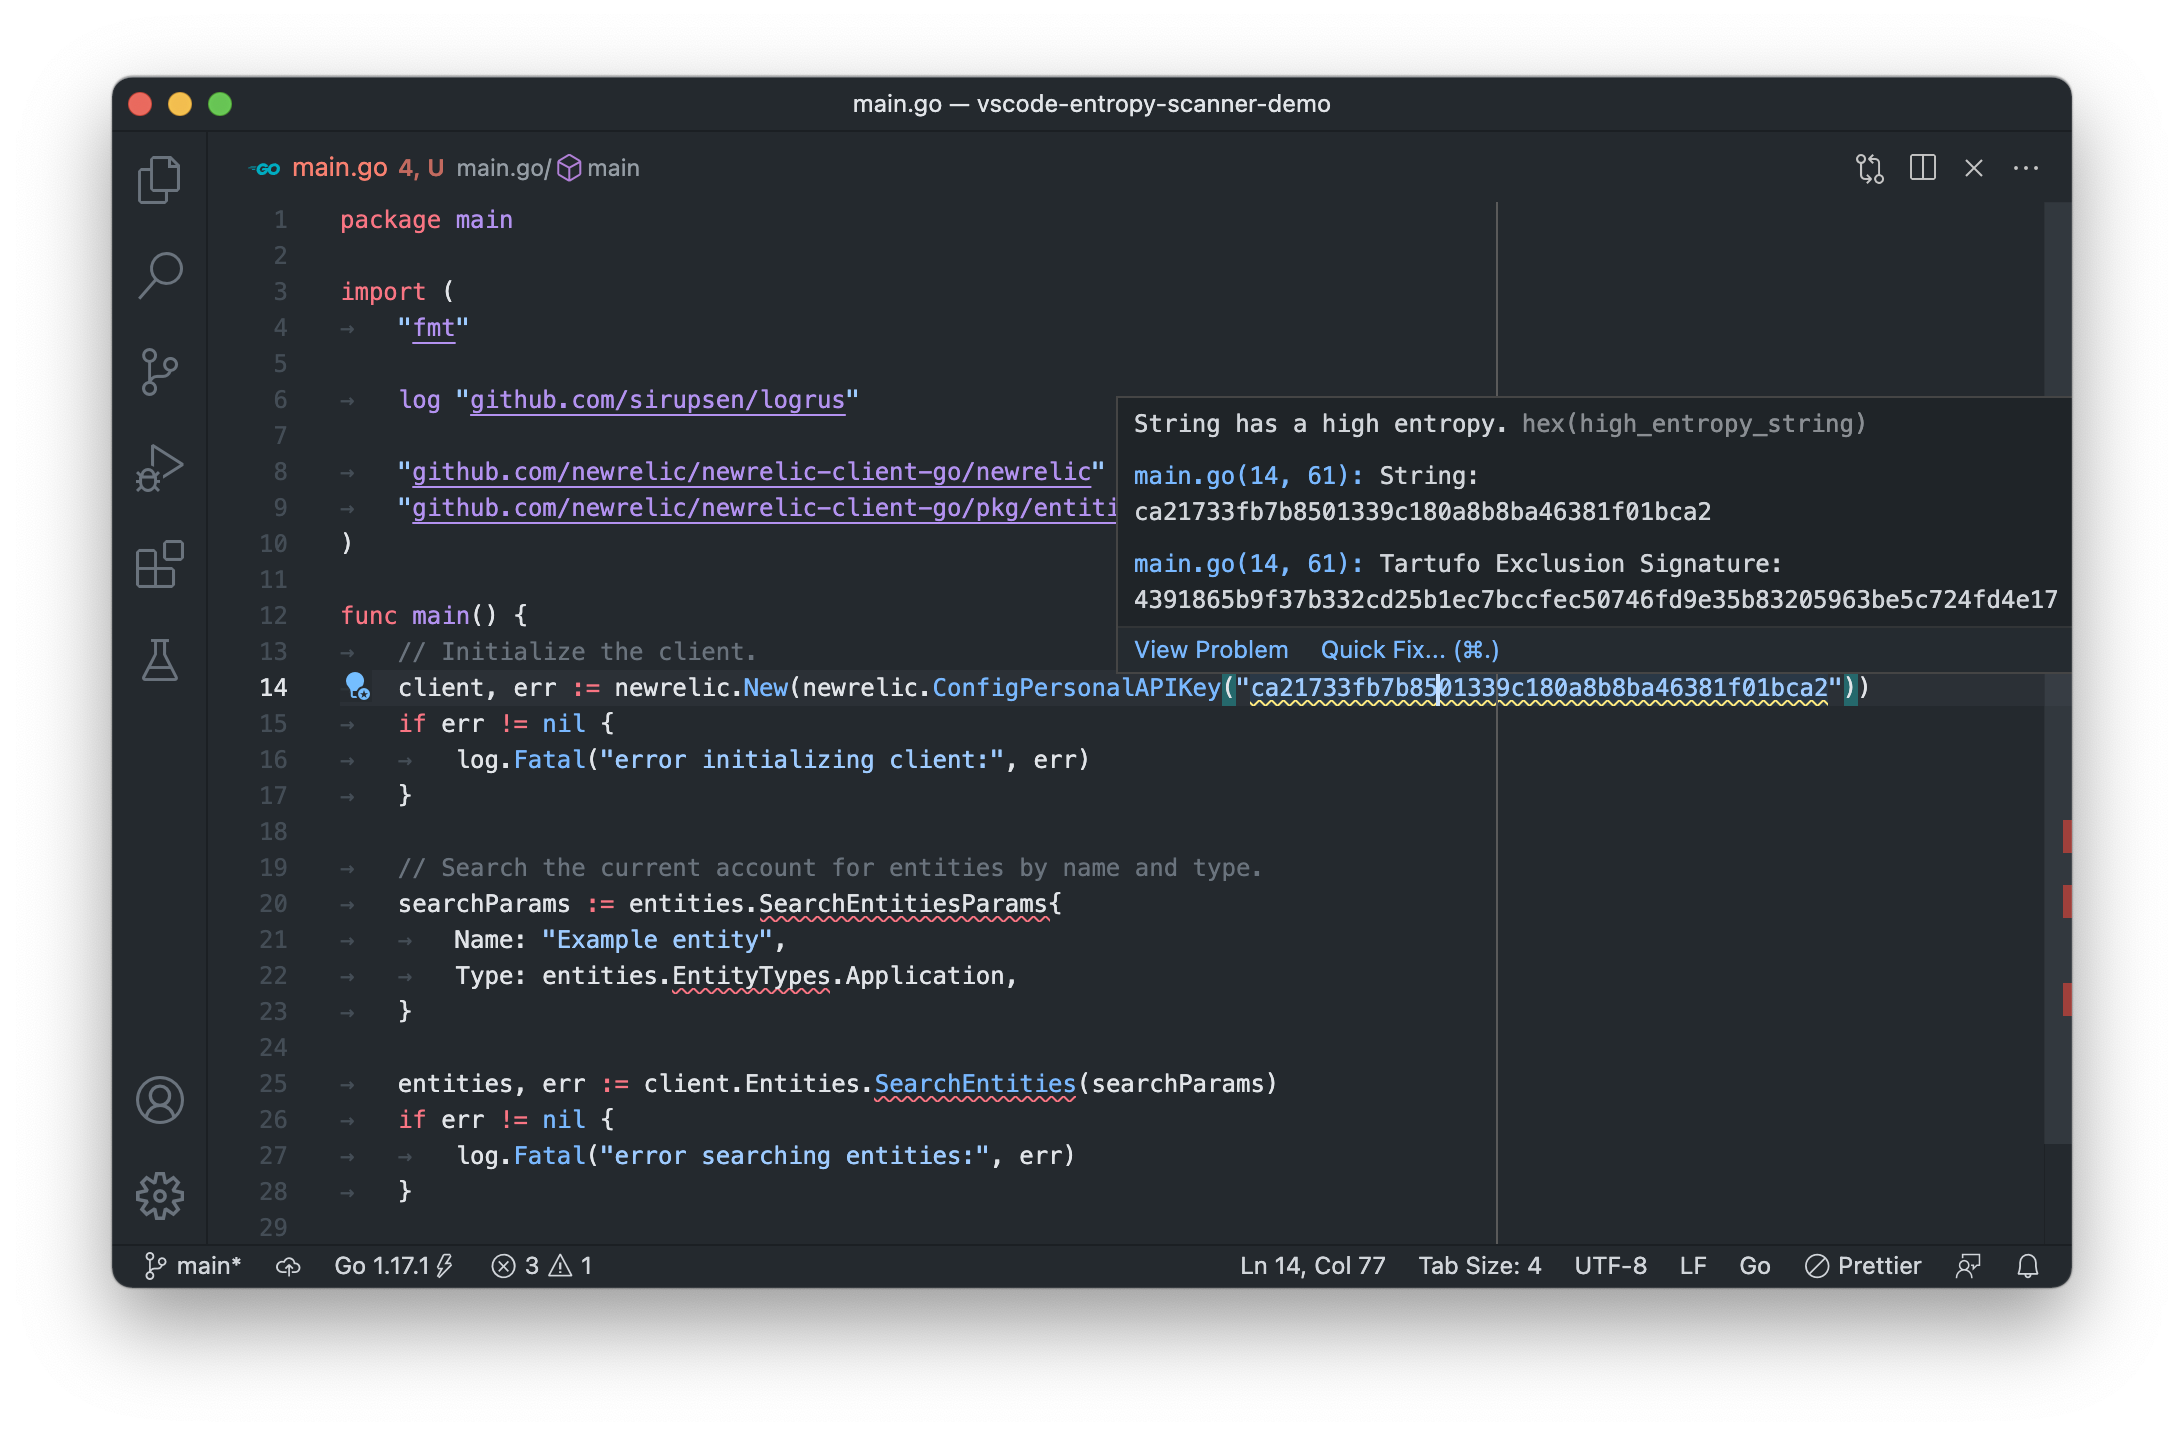 Screenshot of the Visual Studio Code extension in action